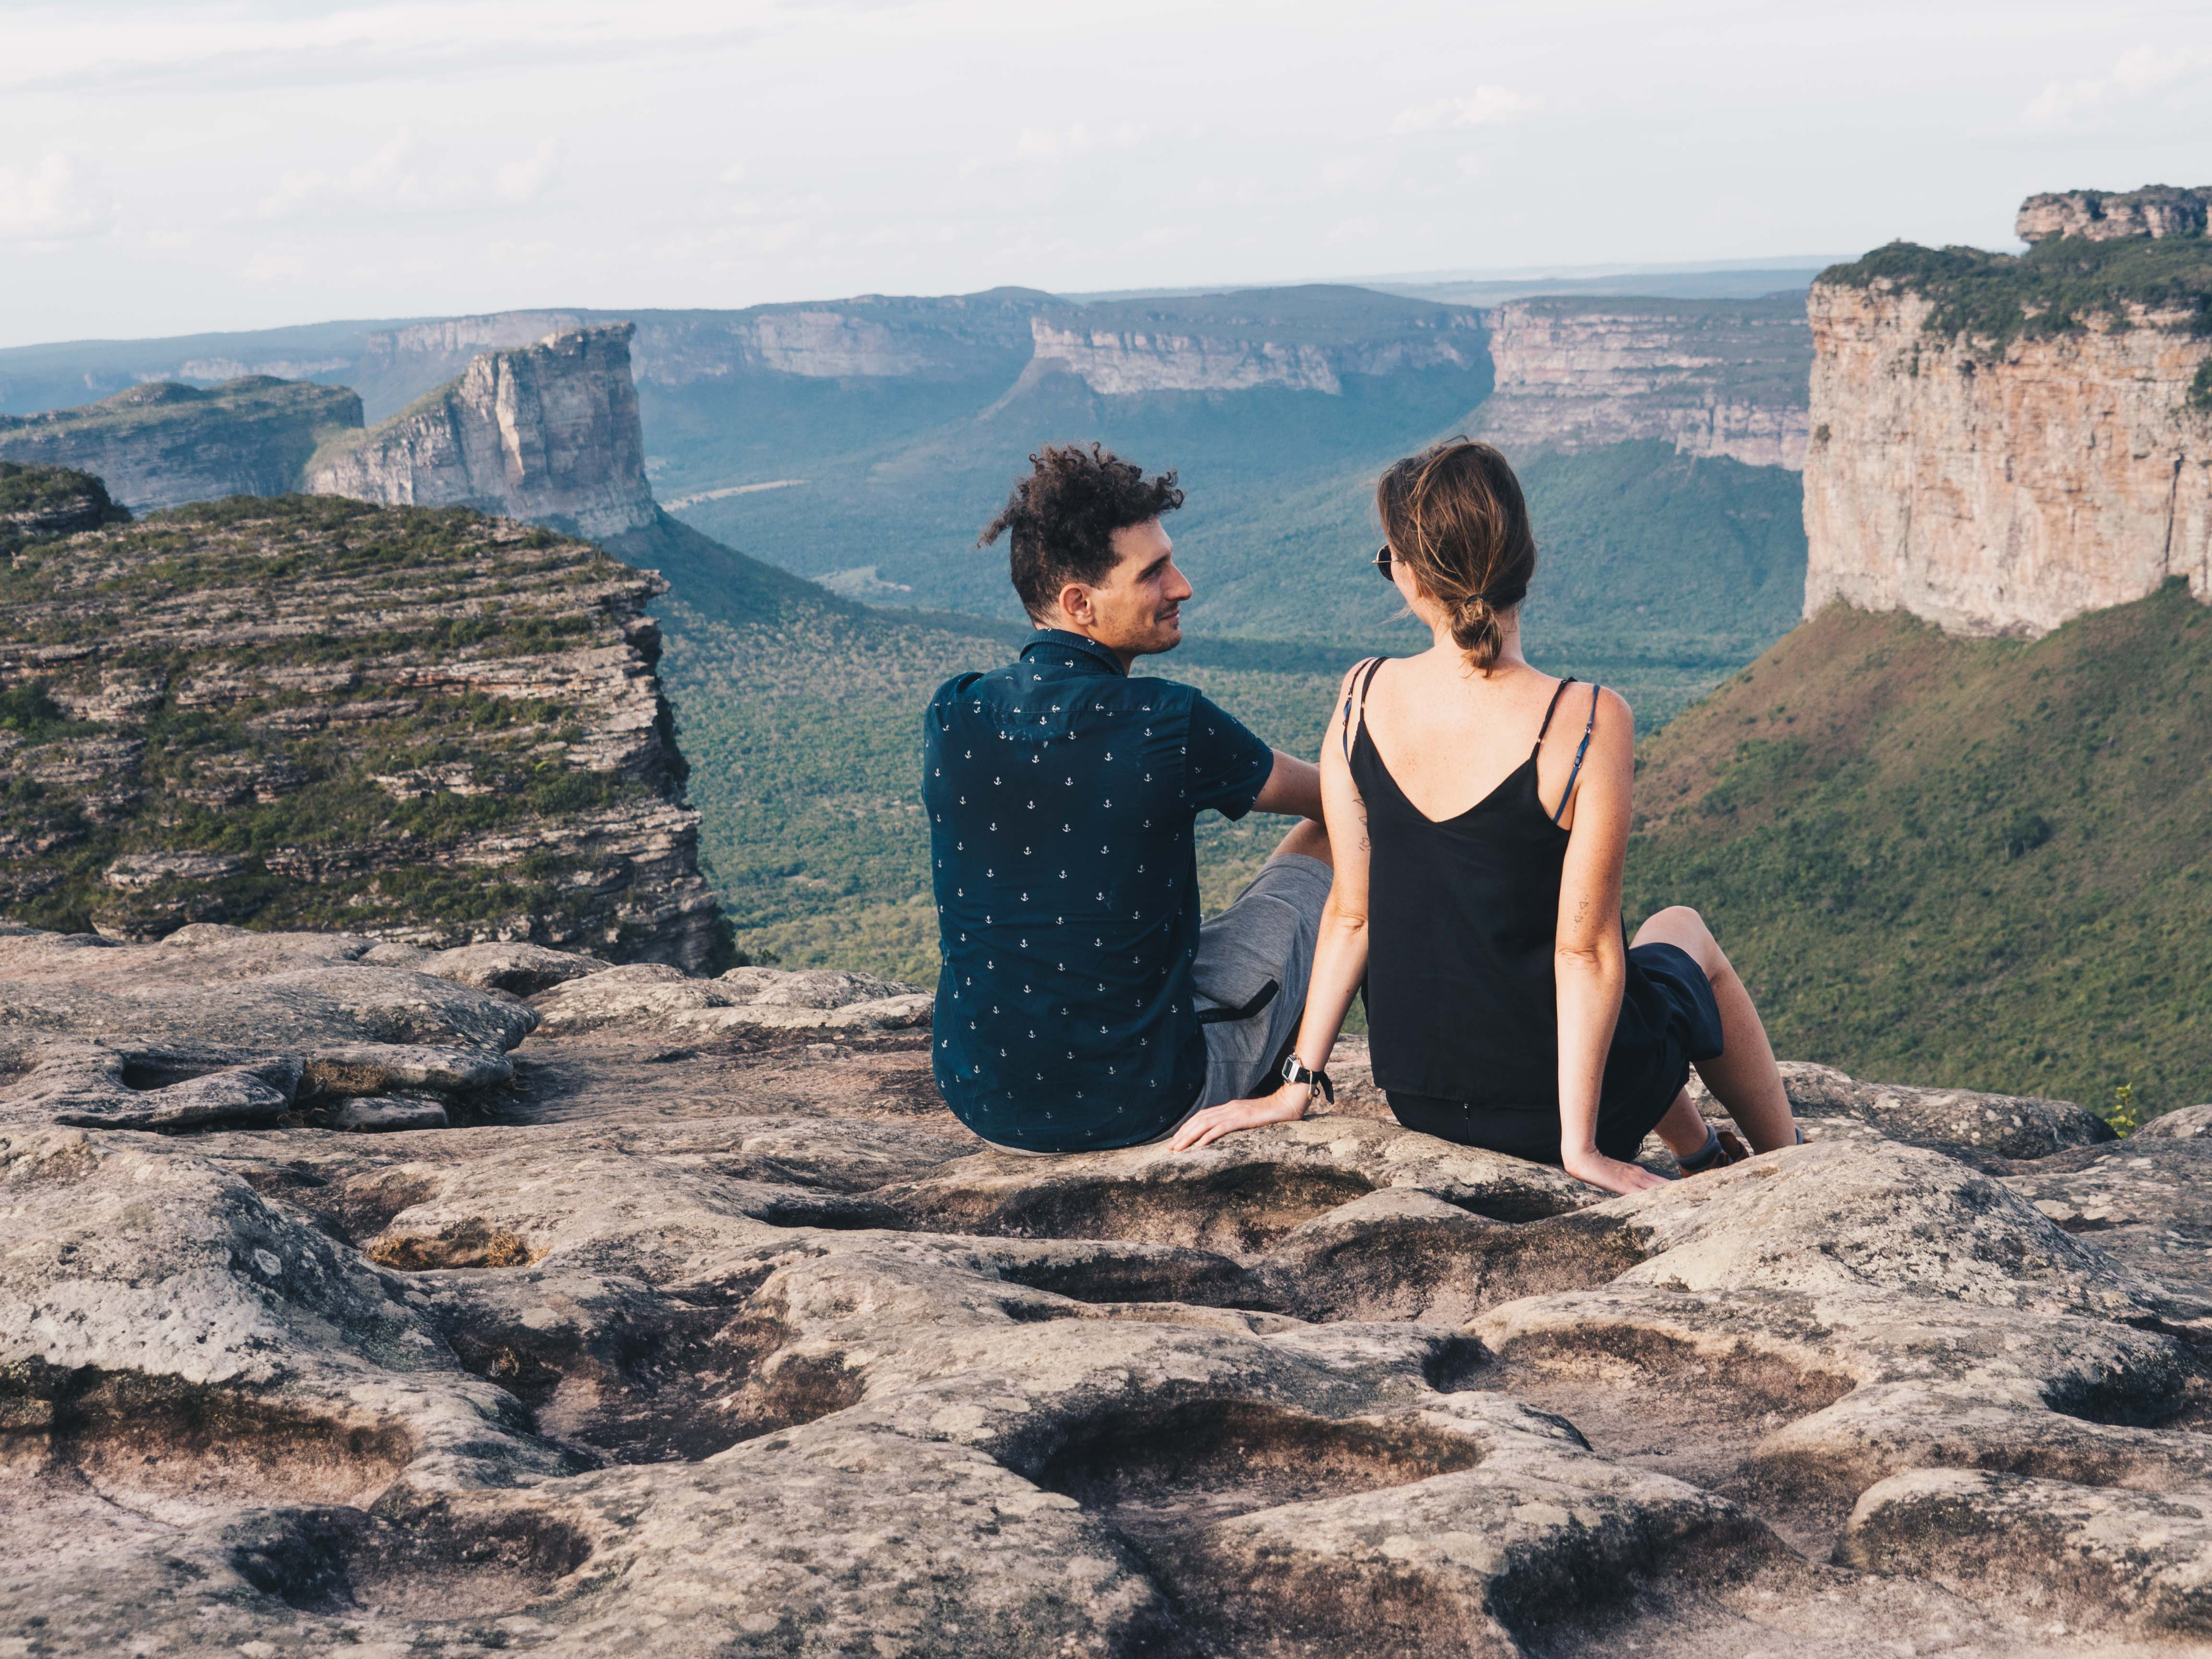 Image for blog article: Chapada Diamantina